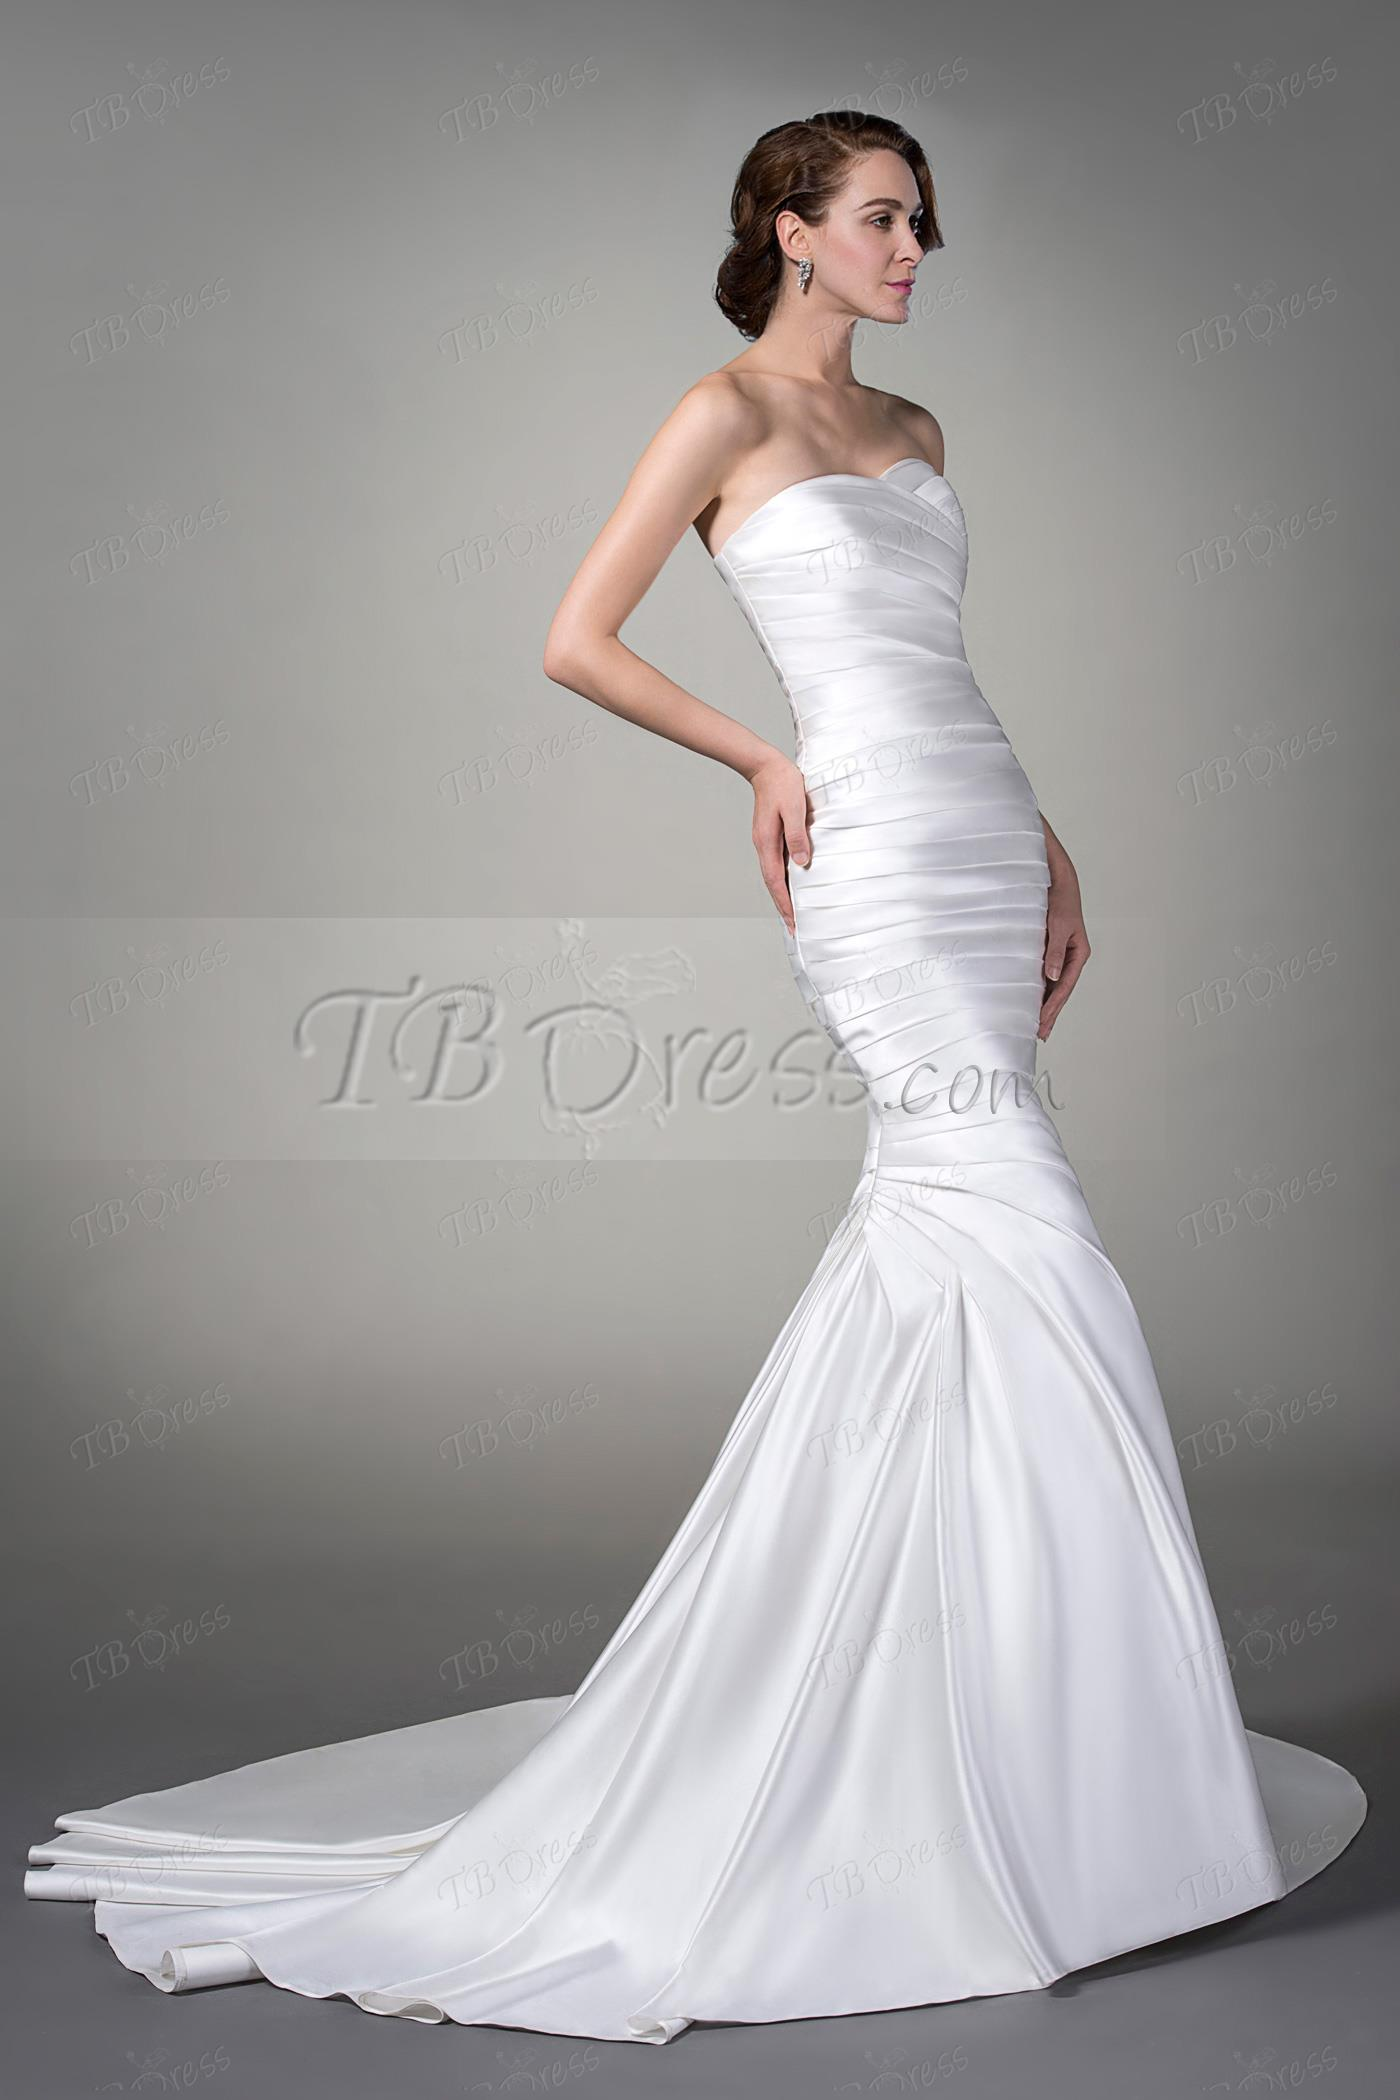 Fancy Trumpet Mermaid Sleeveless Matte Ruched Sweetheart Court Train Wedding Dress Item Code 10792914